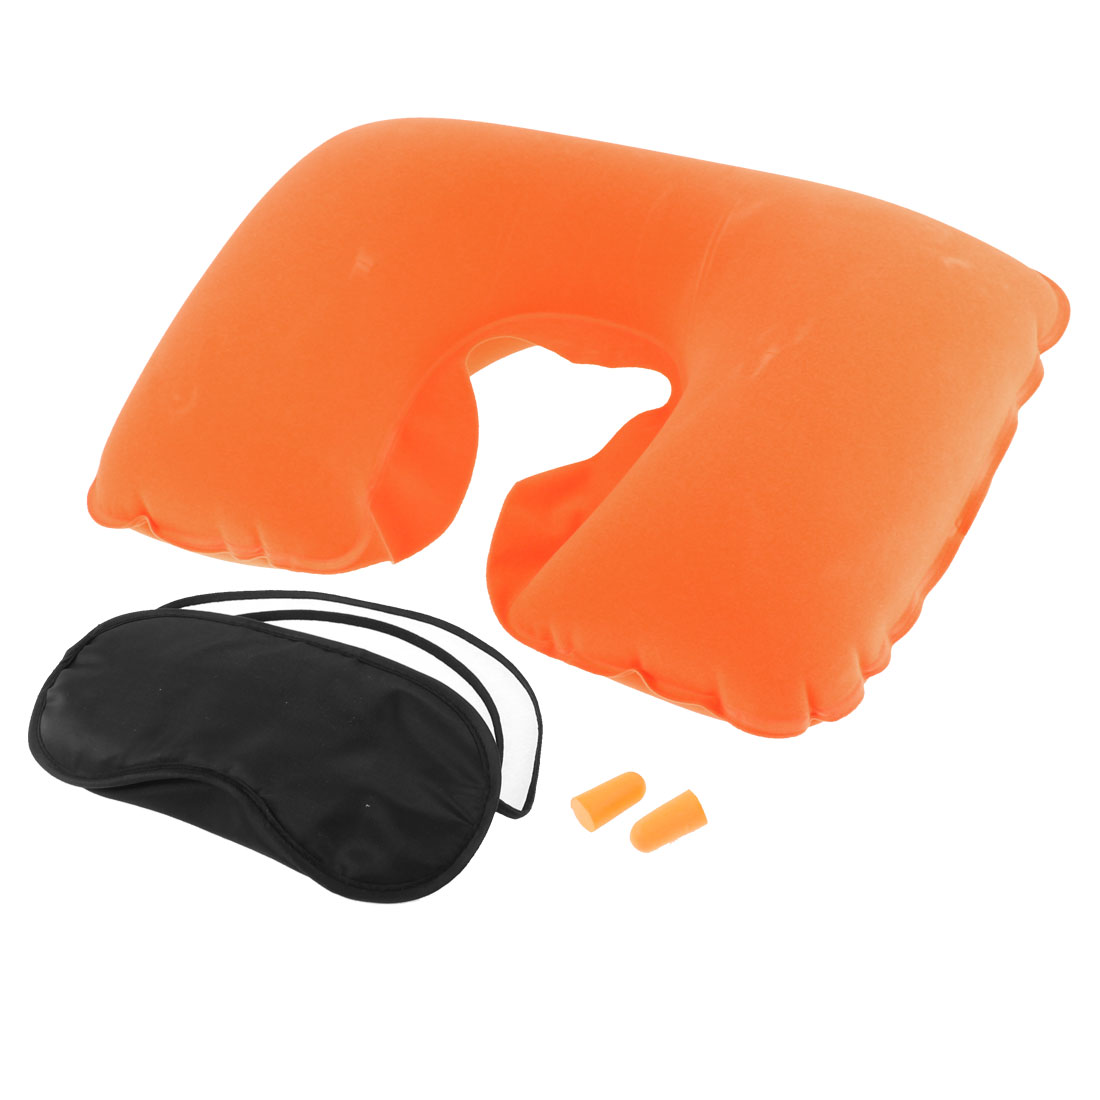 Travel Camping Sleeping Inflatable Pillow Eye Mask Earphone Orange 3 in 1